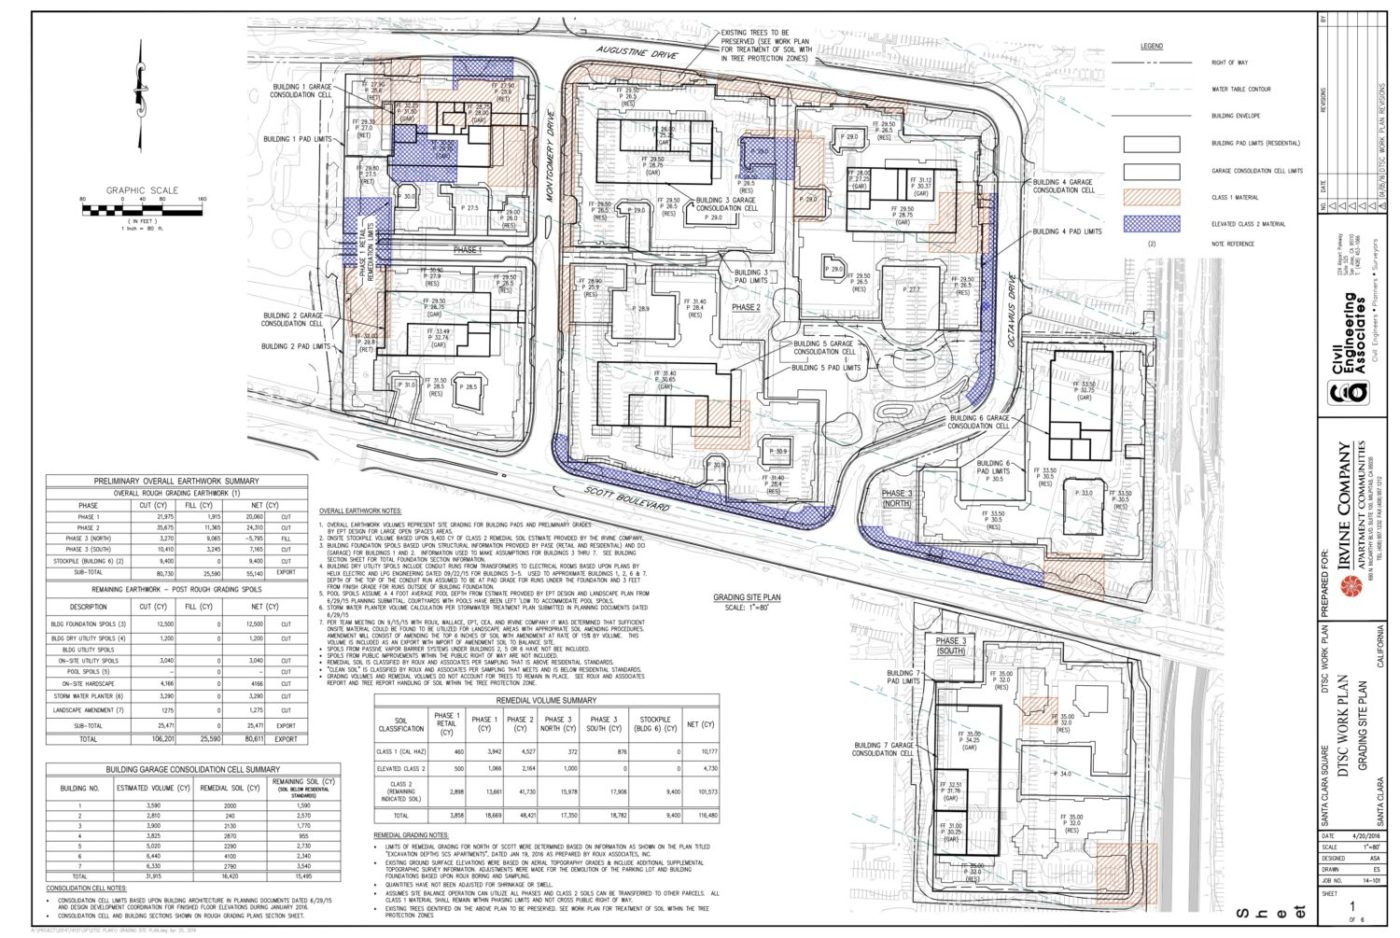 Grading-and-building-plans-showing-Class-1-hazardous-materials-beneath-Santa-Clara-Square-Apartments-by-California-DTSC-cy-Ashley-Gjovik-1400x938, I thought I was dying: My apartment was built on toxic waste, Local News & Views